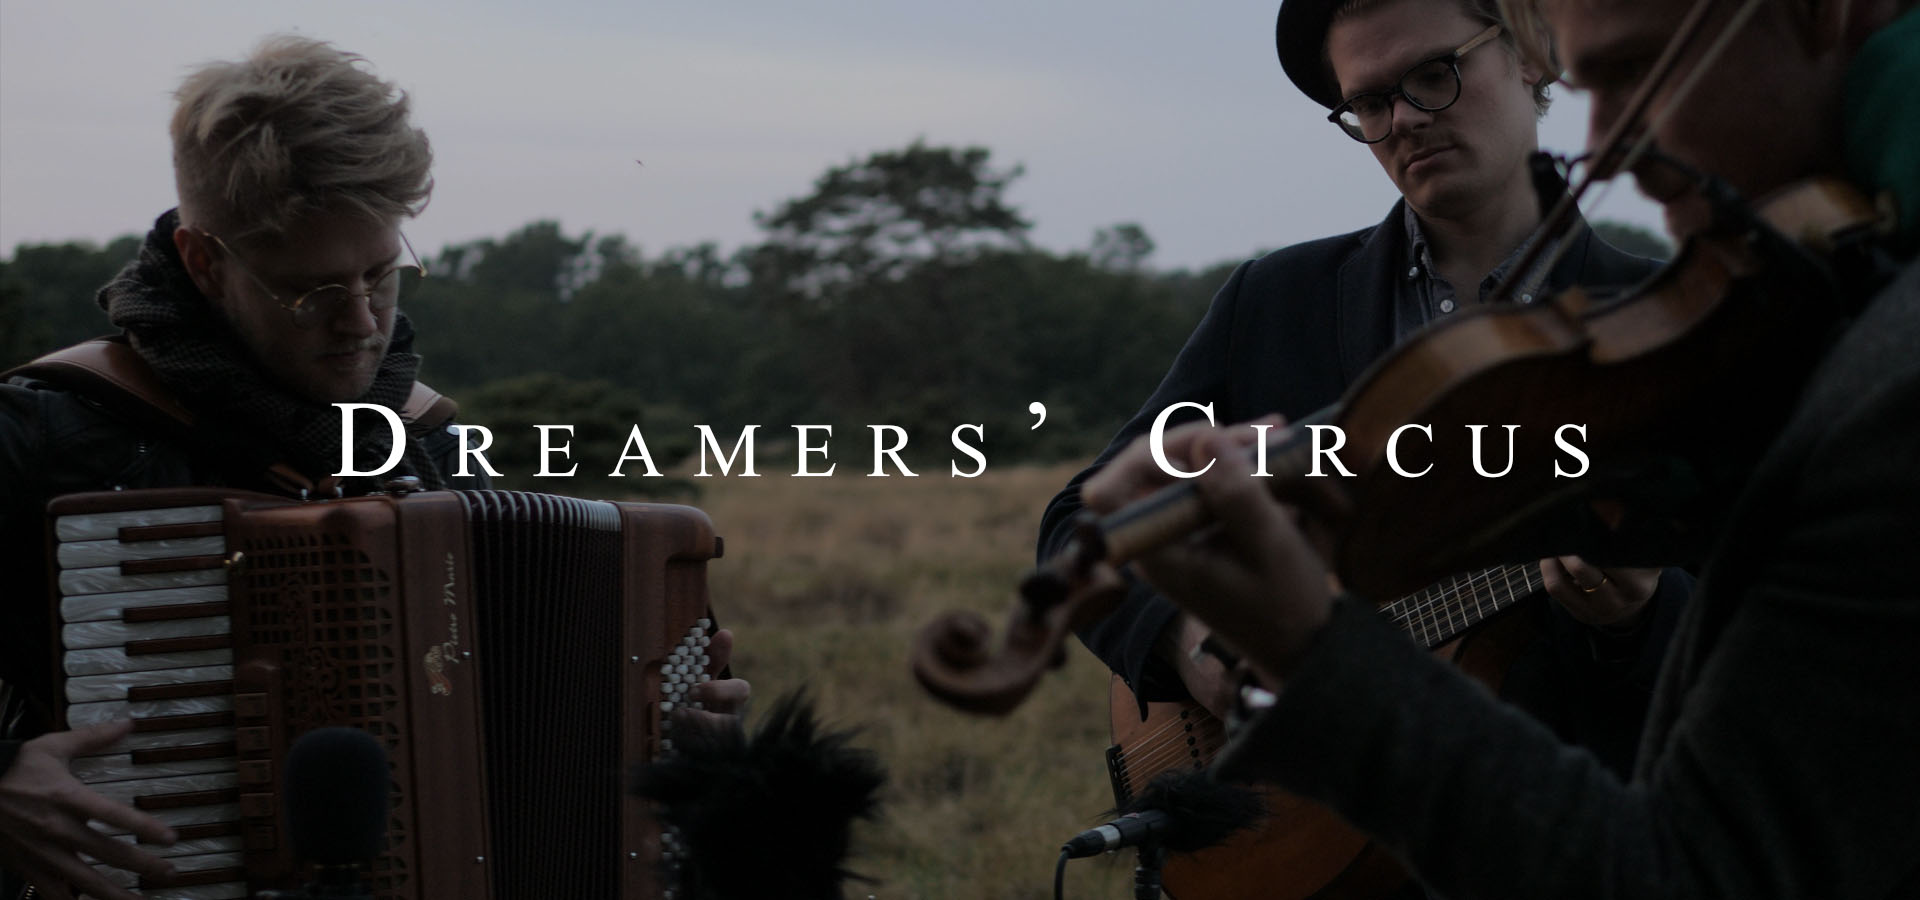 "<a href=""http://www.moensessions.com/2017/10/24/dreamers-circus/"">October 2017</a>"